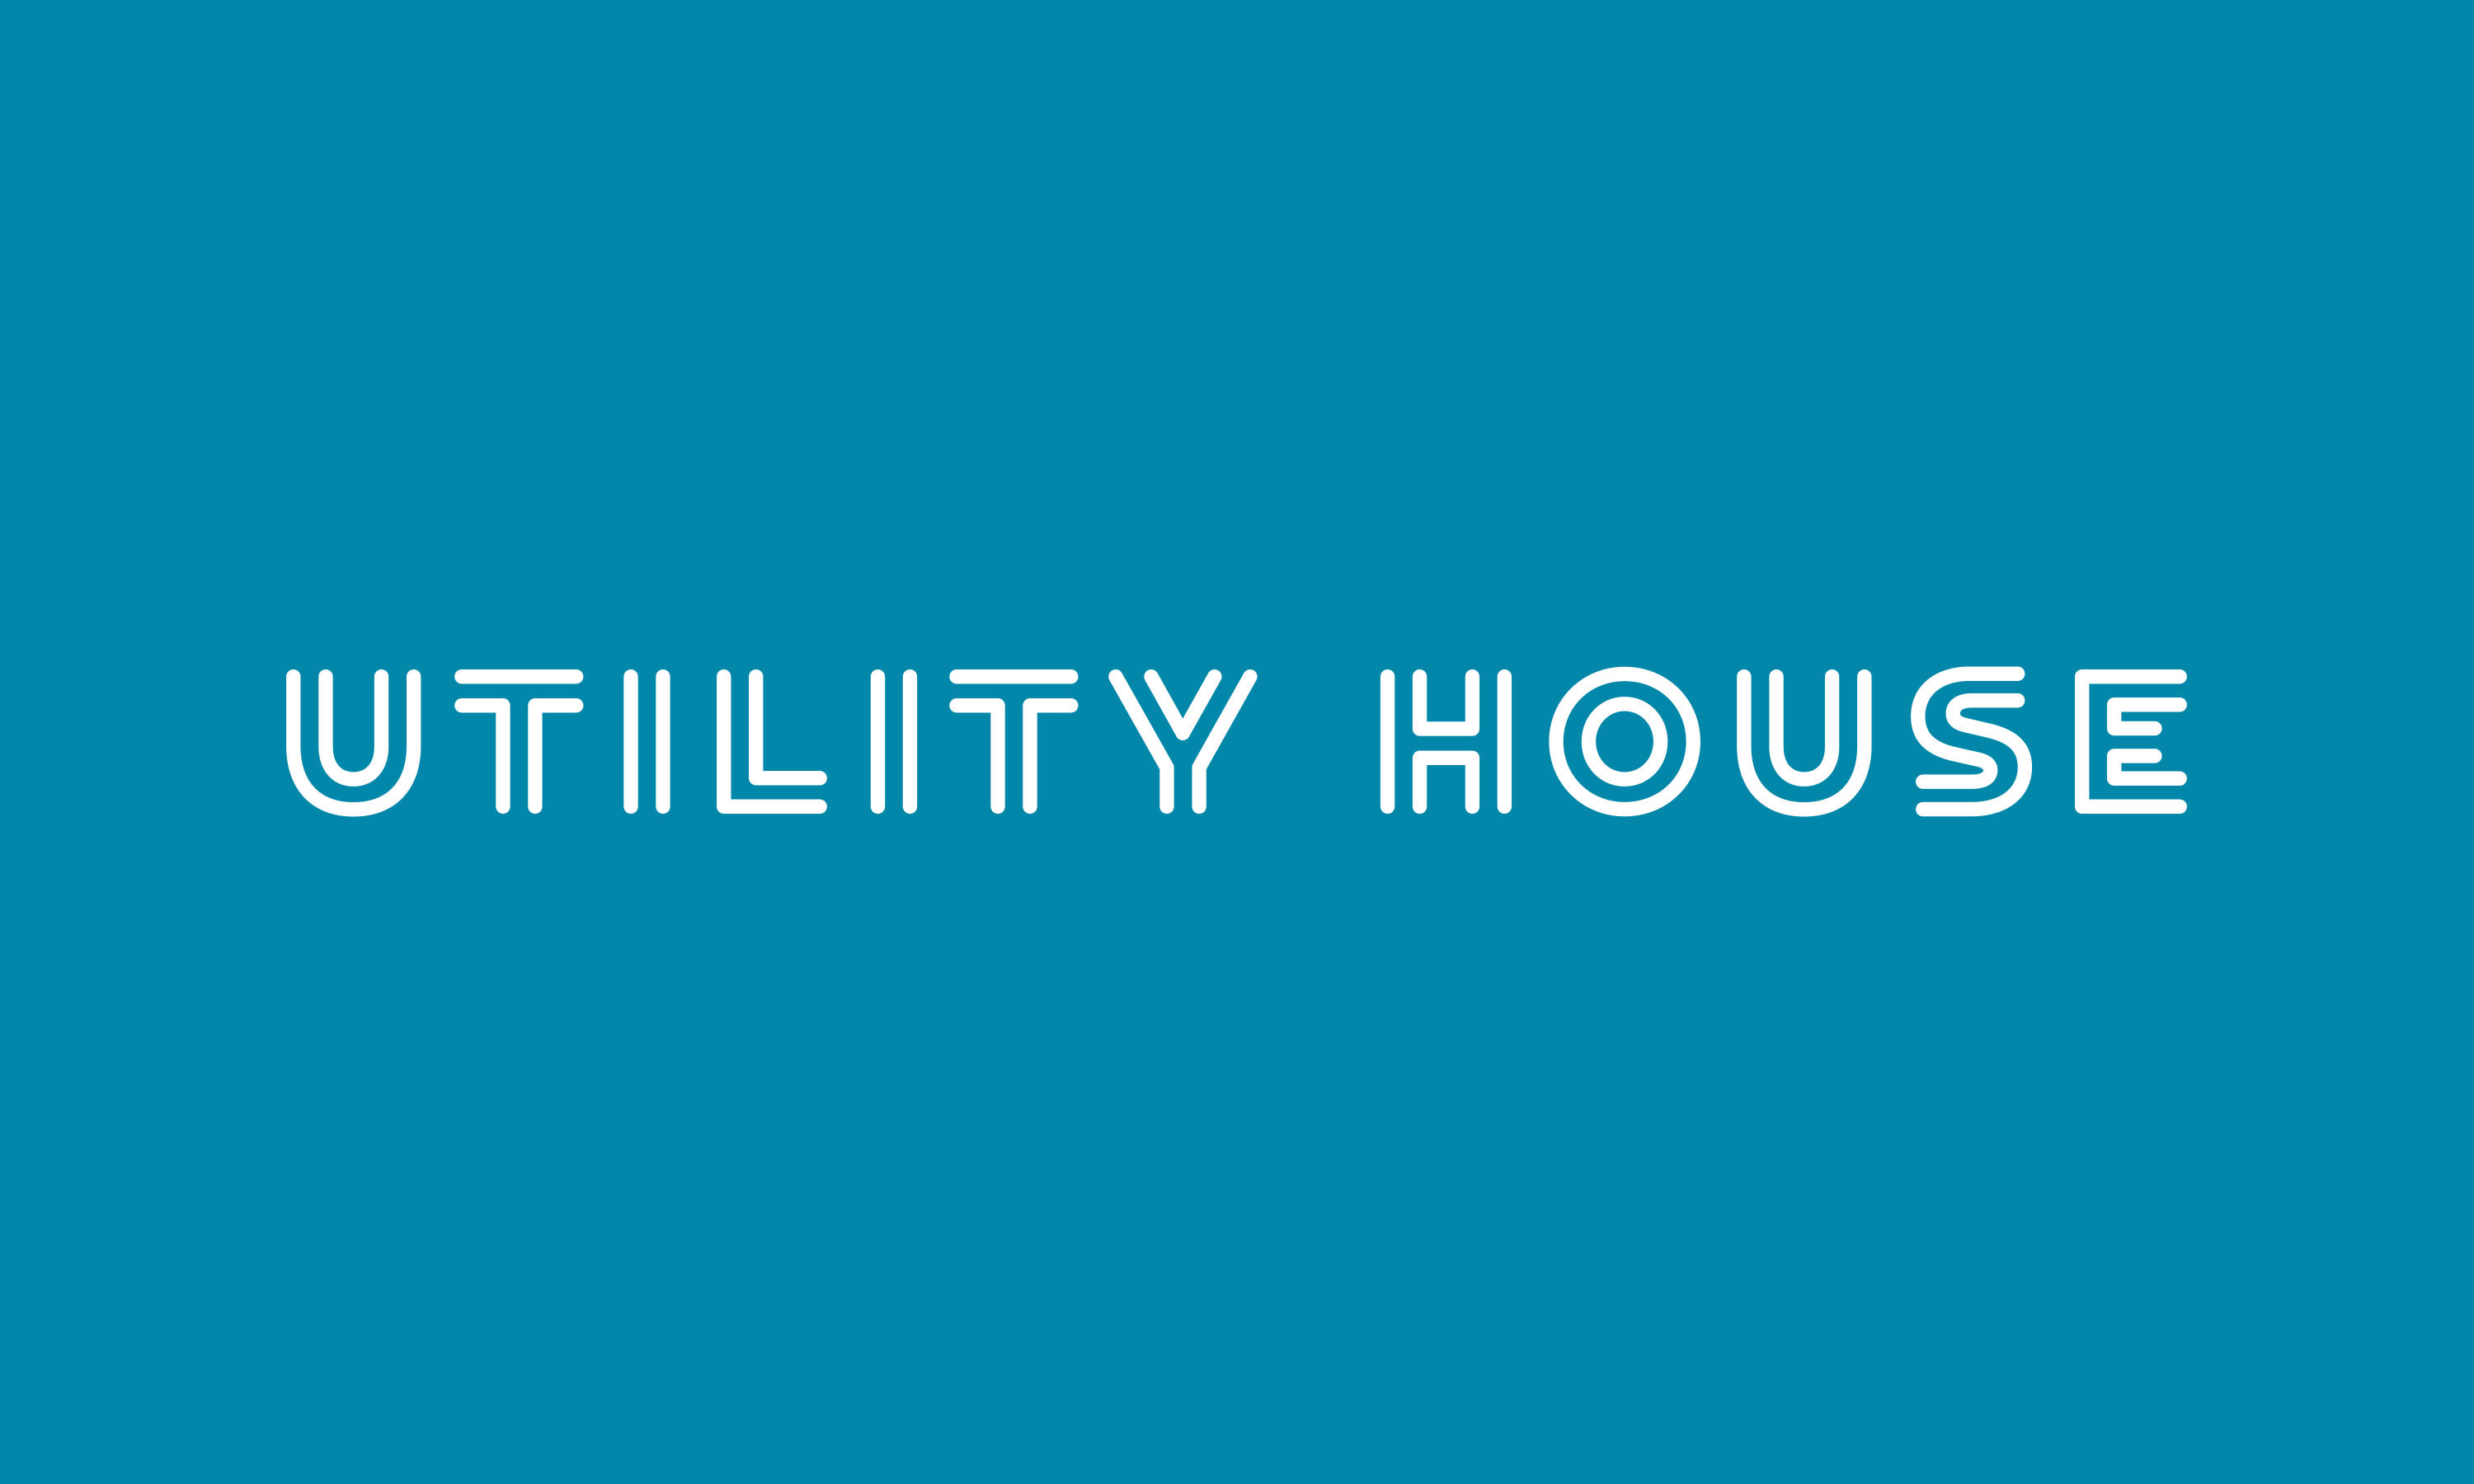 utility-house-branding-logo-monstera